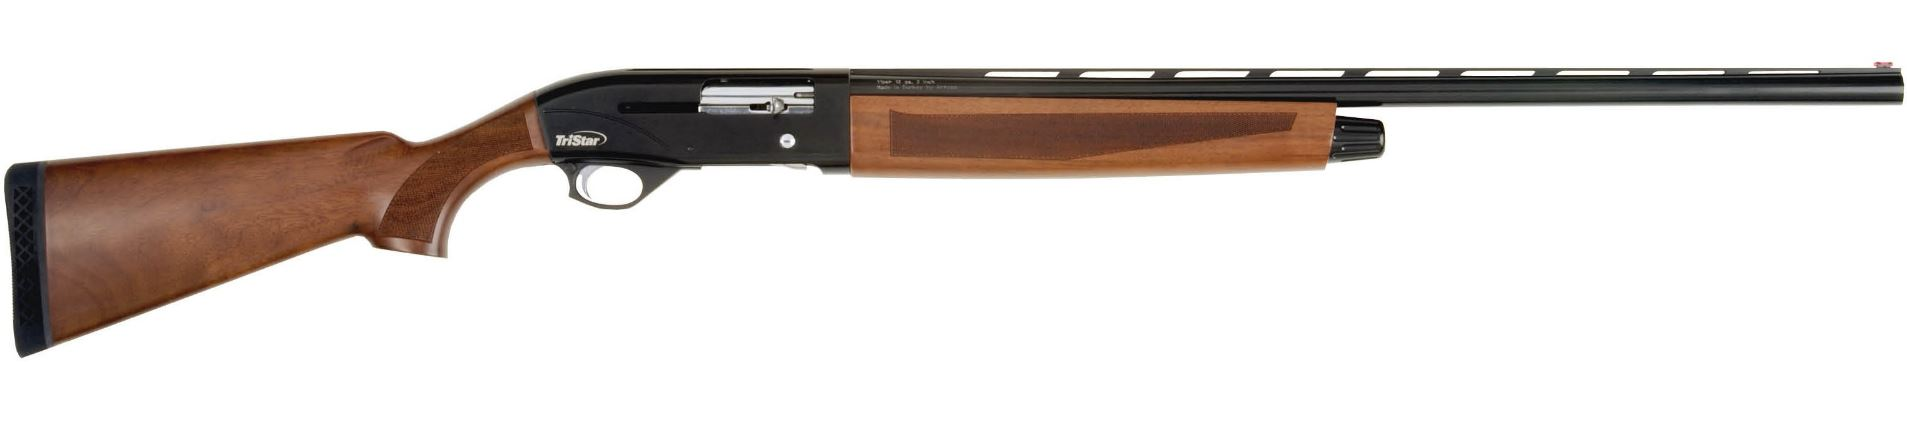 TriStar Sporting Arms Viper G2 20 Gauge